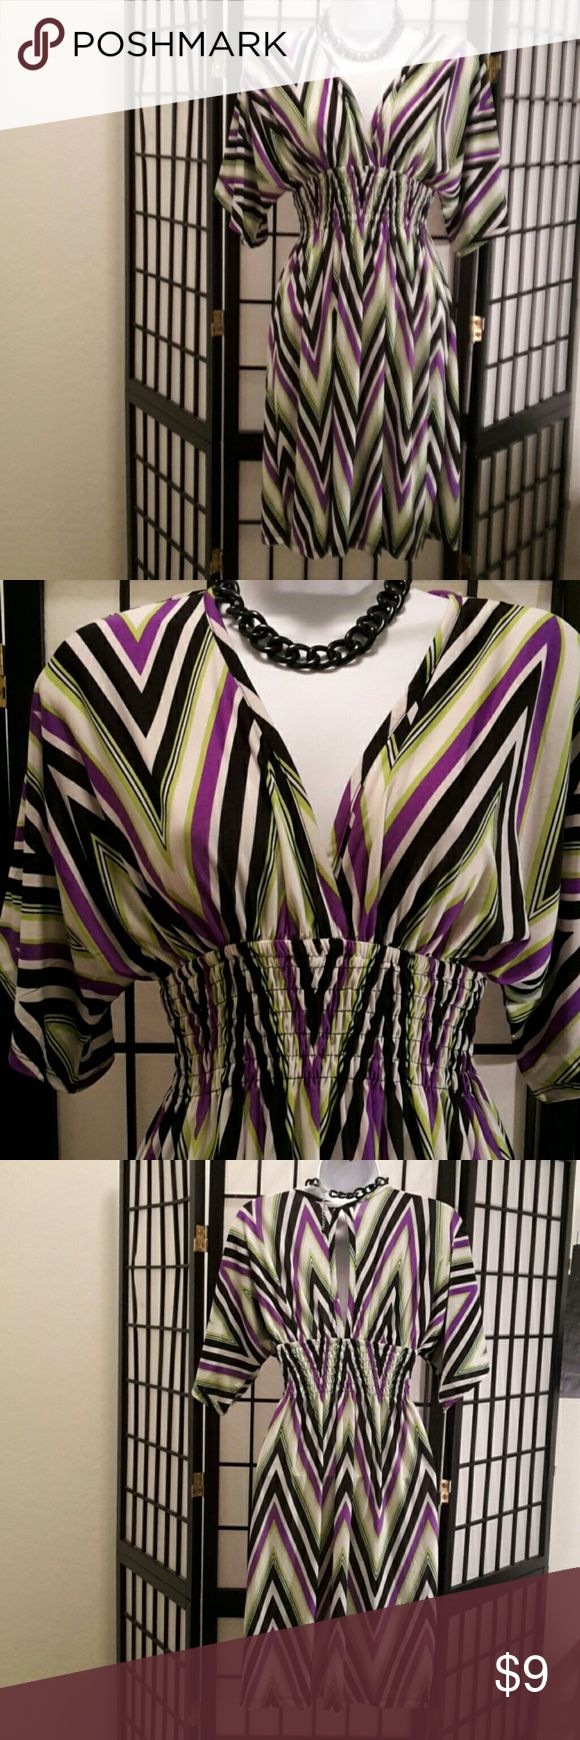 *NWOT*Cristinalove Multi-color Short Maxi Dress Striped, Lightweight, Keyhole Back, Gather Waist, A-Line, Flare, Stretch, 95% Polyester 5% Soandex, New Without Tag, Never Worn, Deep V-neck, Accessories not included. Sorry No trade. I will consider reasonable offers. Thank you for sharing my closet, I will ALWAYS show you Posh Love ❤ by doing the same💓 Cristinalove Dresses